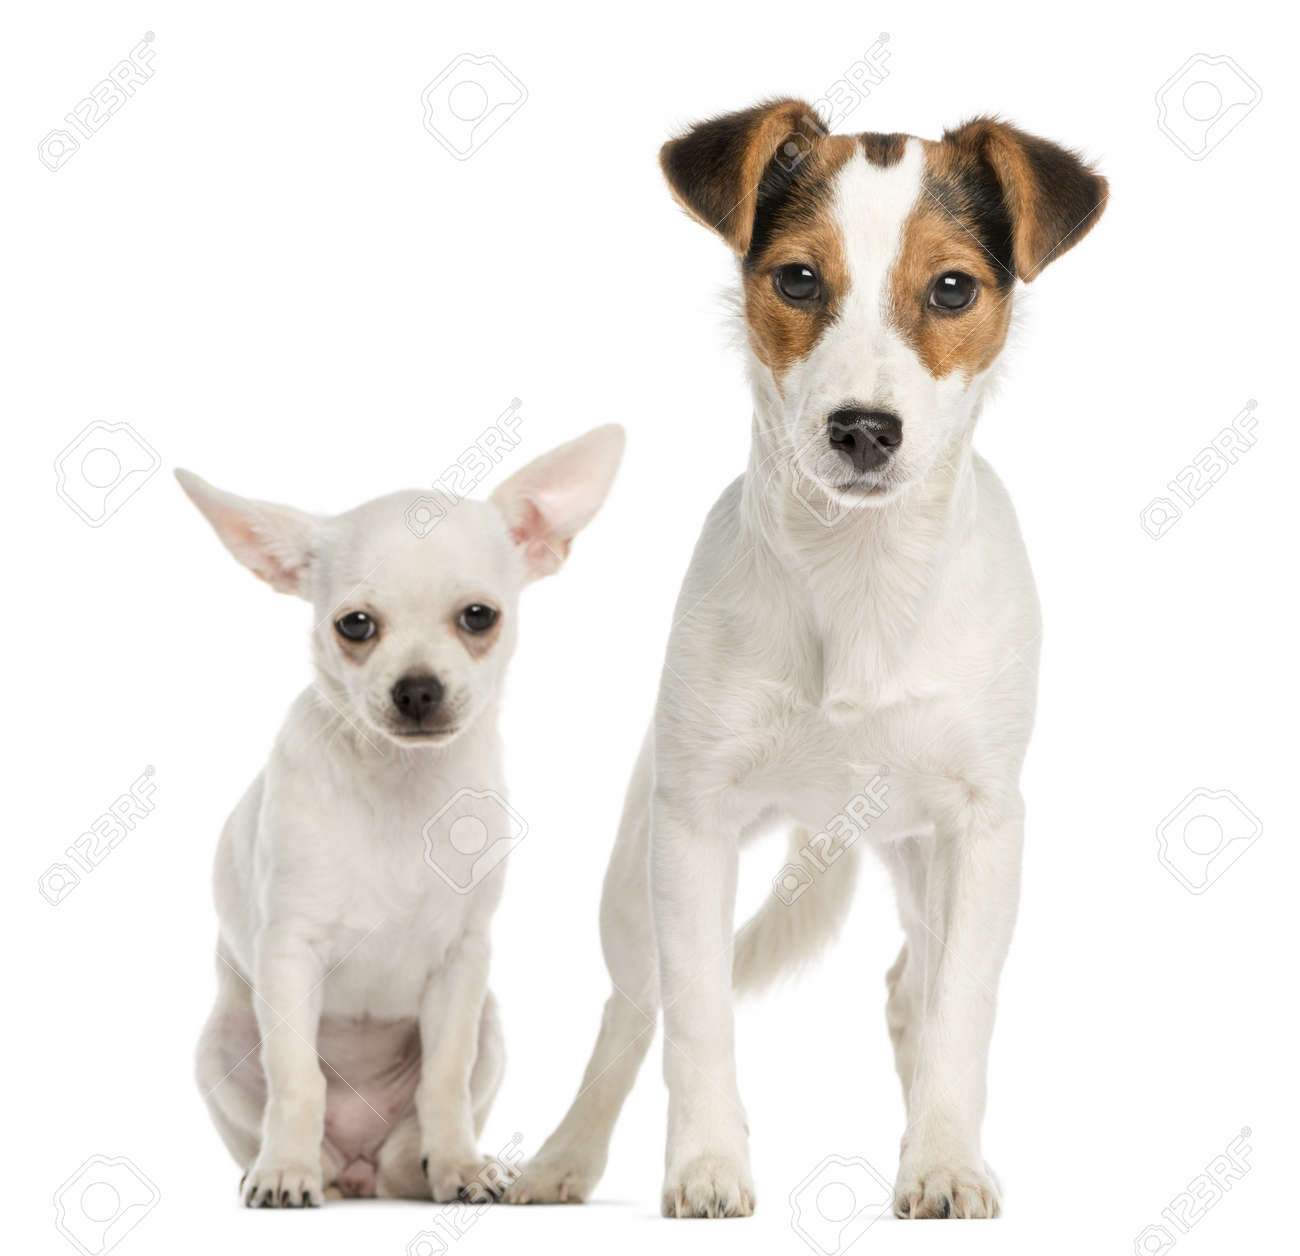 chihuahua puppy and jack russell terrier next to each other